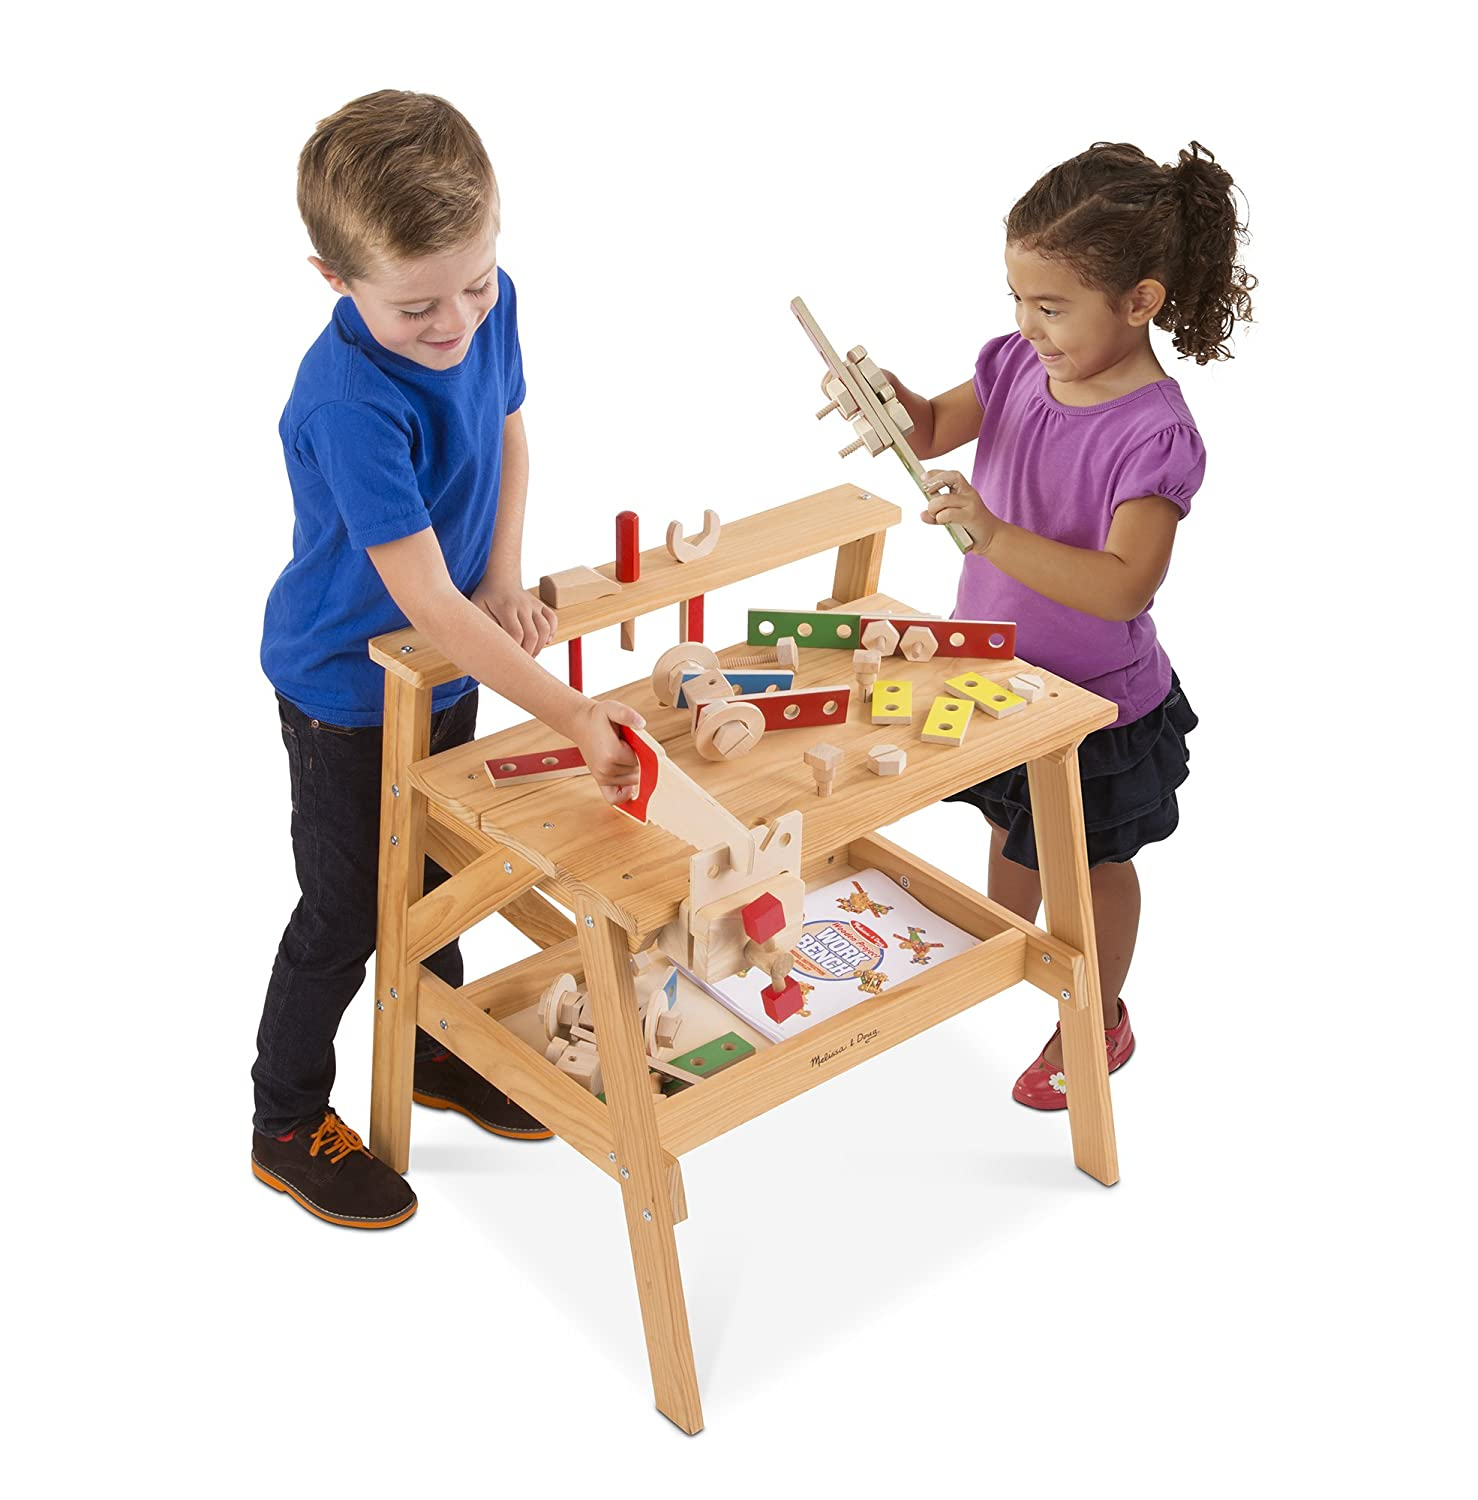 Melissa & Doug Wooden Workbench .96 @ Amazon.ca